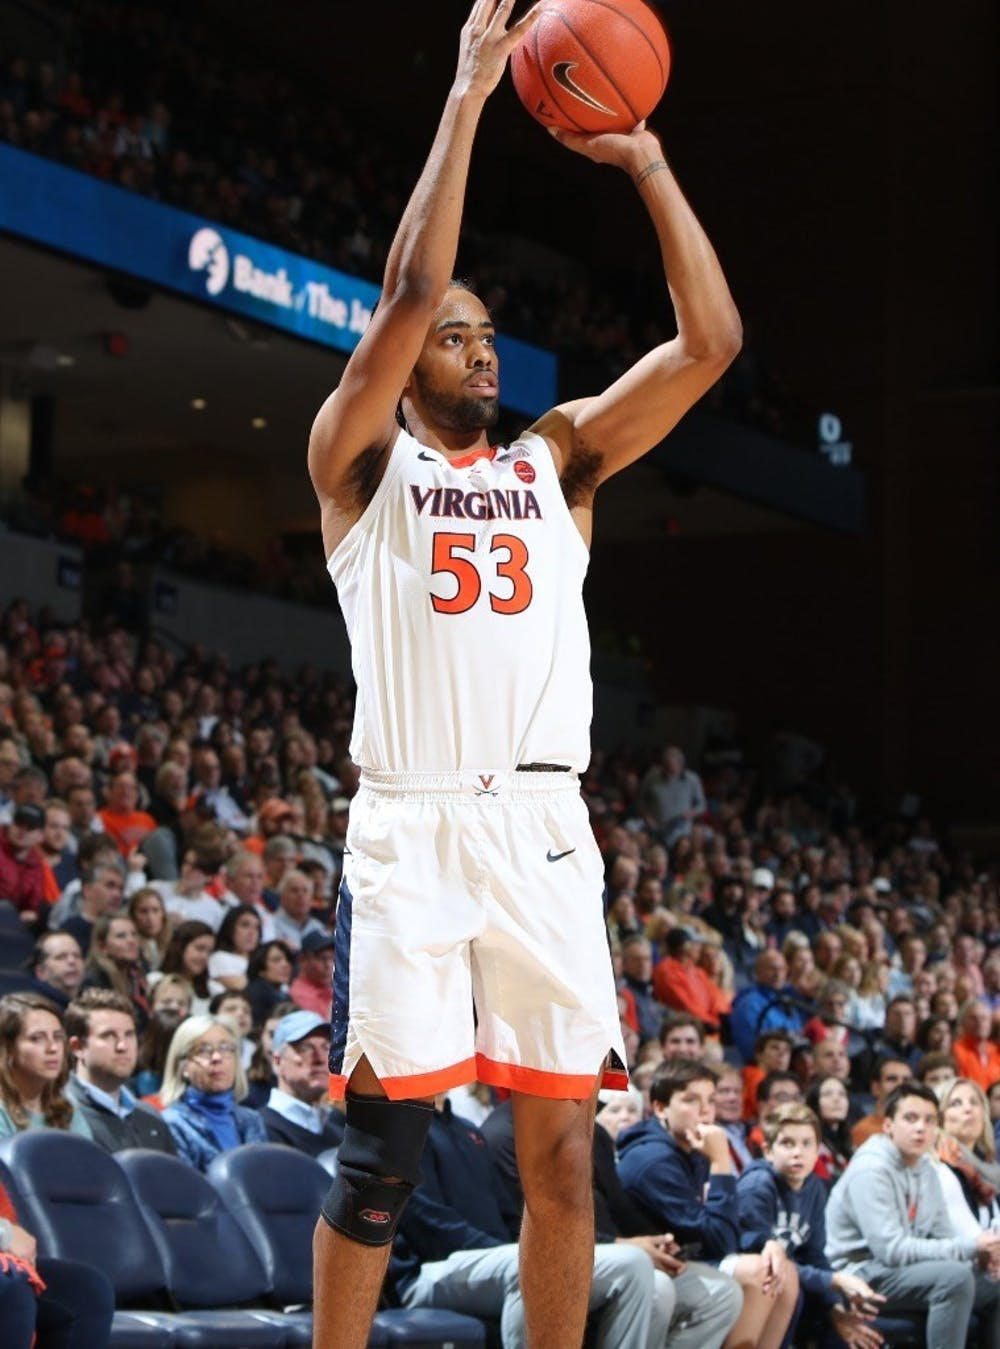 <p>Junior guard Tomas Woldetensae was a major force on Virginia's offense against Louisville, sinking seven threes and scoring 27 points in the contest.&nbsp;</p>